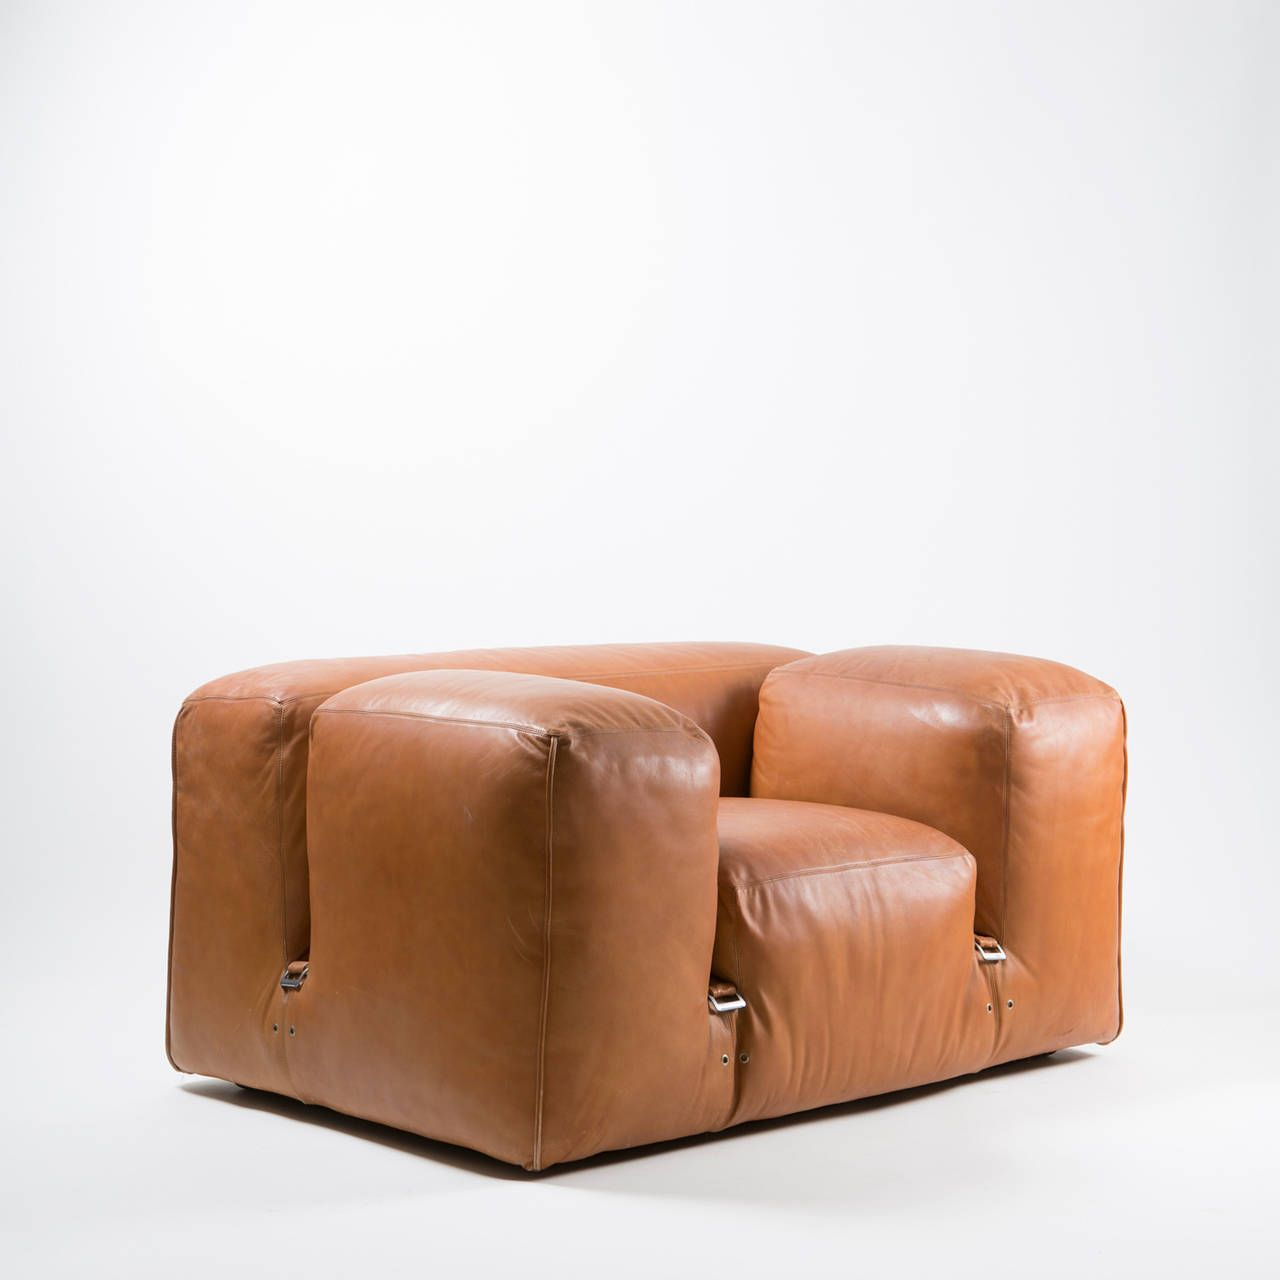 Antique lounge chairs - Rare Le Mura Lounge Chair By Mario Bellini For Cassina